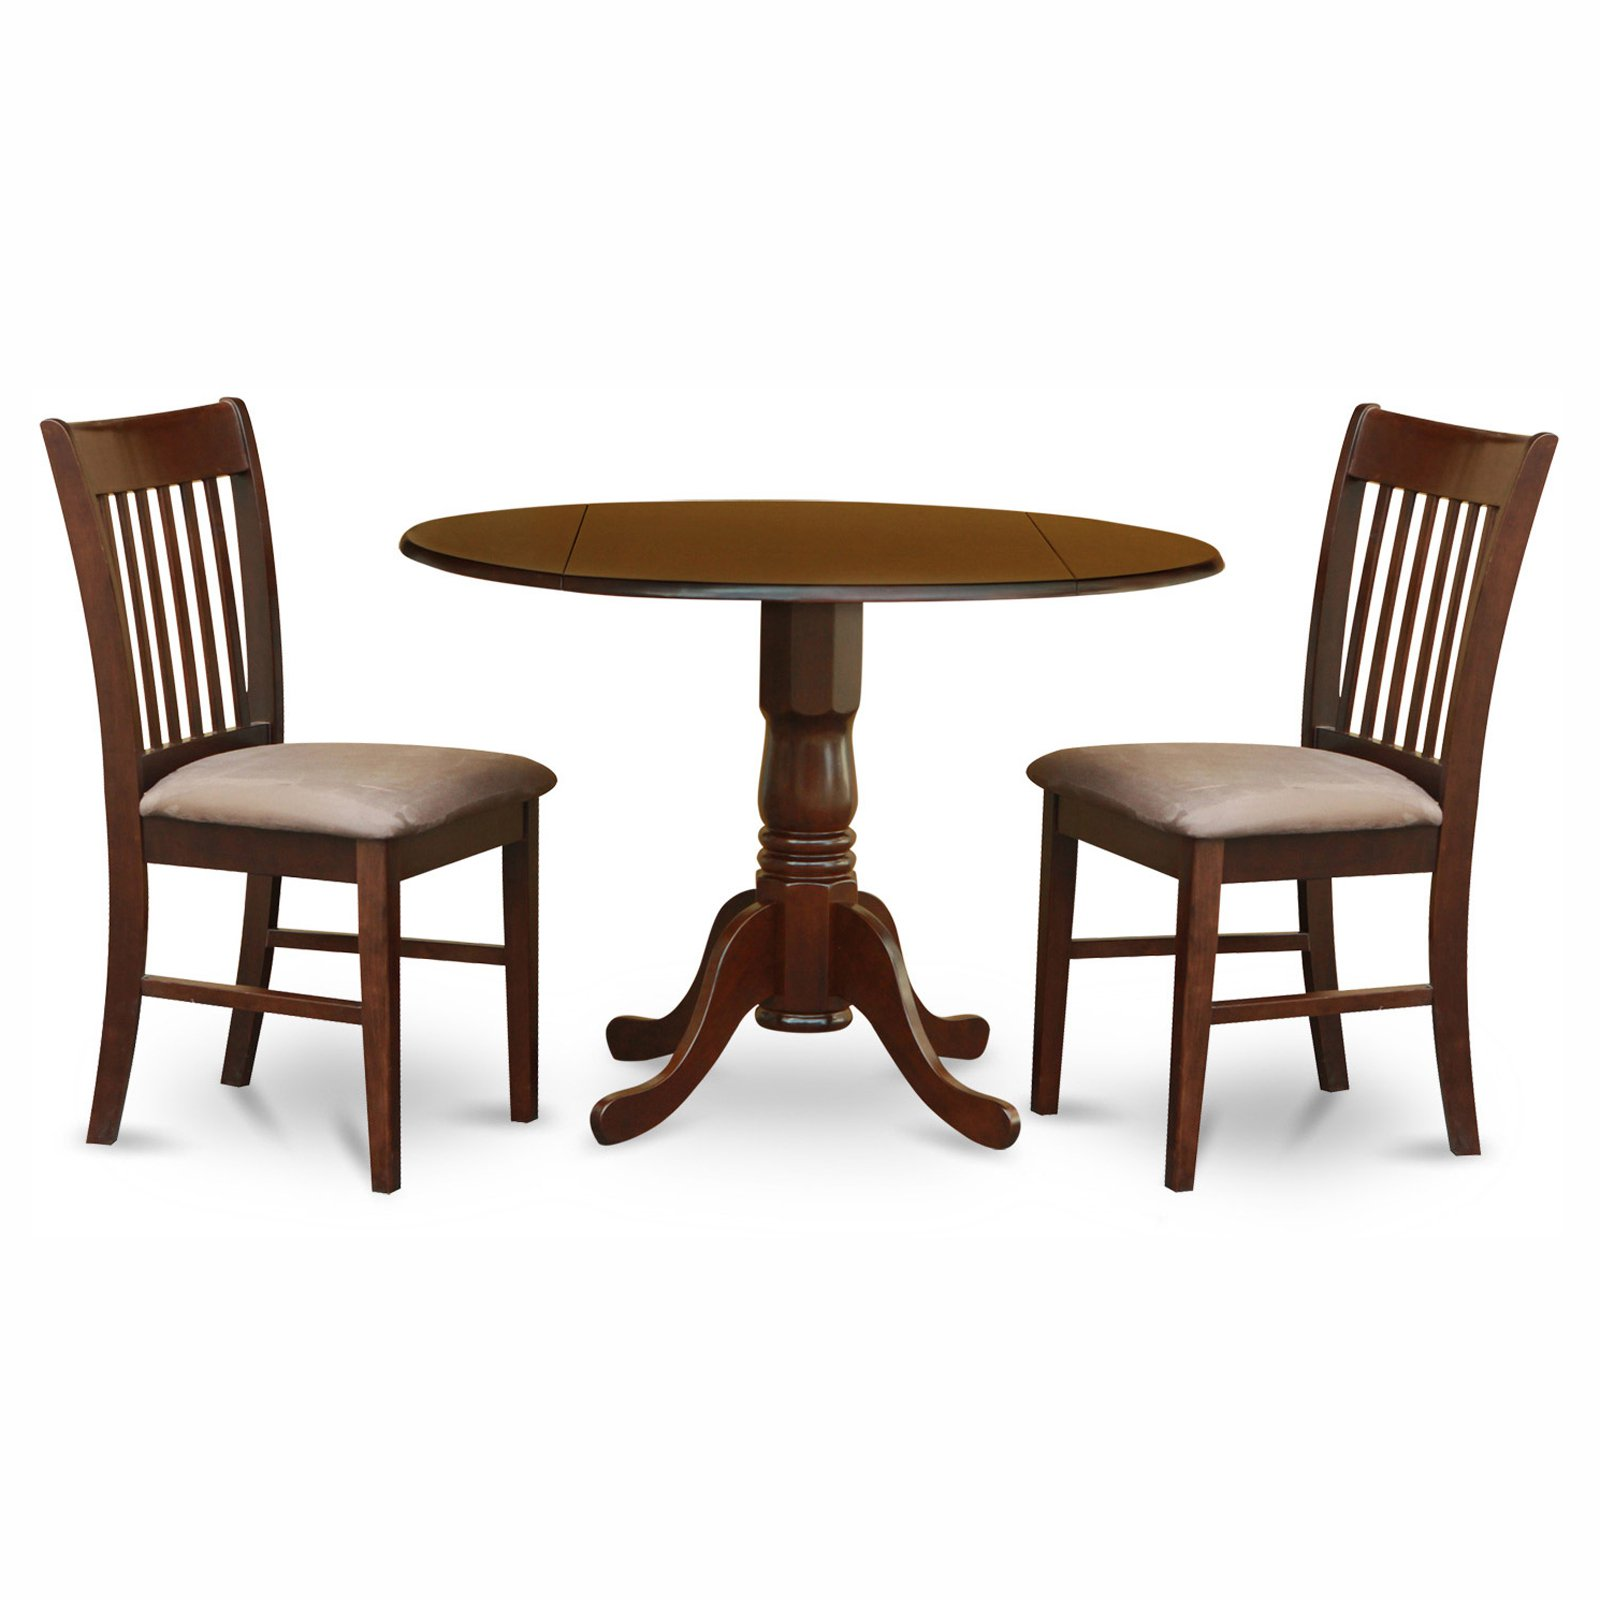 East West Furniture Dublin 3 Piece Drop Leaf Dining Table Set with Norfolk Microfiber Seat Chairs